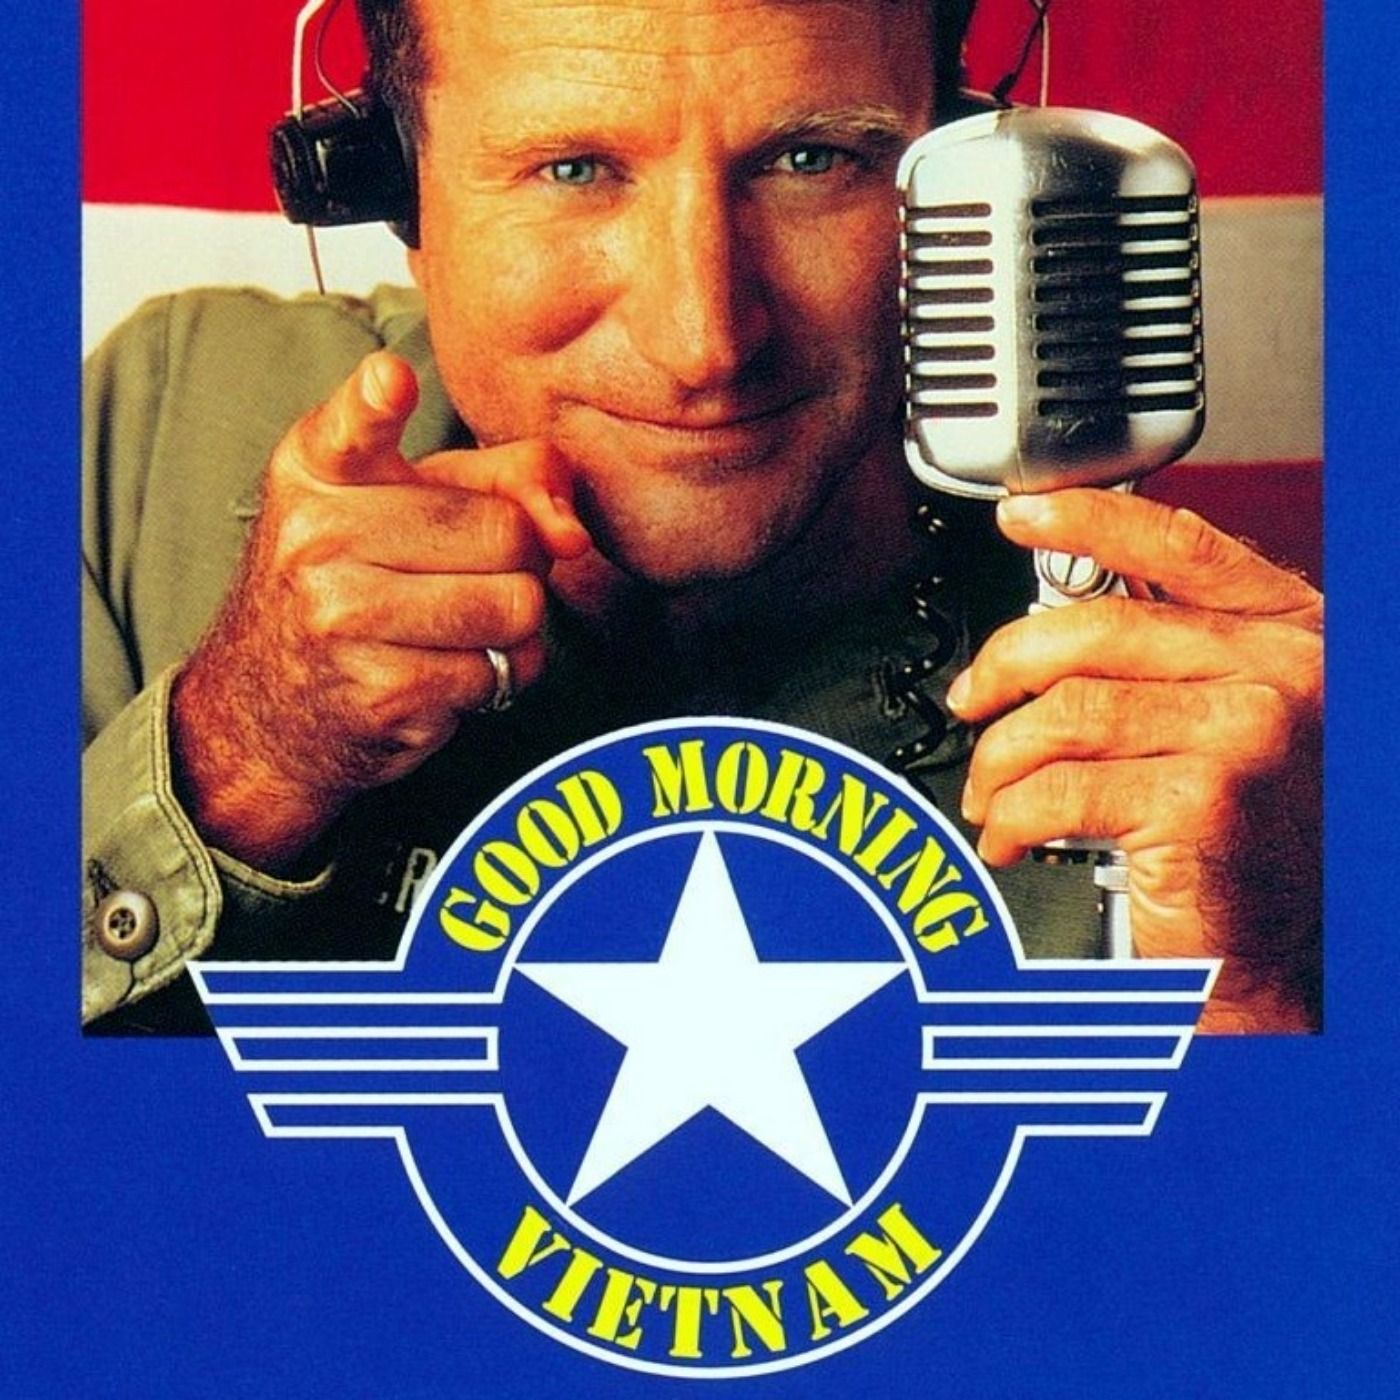 PODCAST CINEMA | CRITIQUE DU FILM Good Morning Vietnam - CinéMaRadio